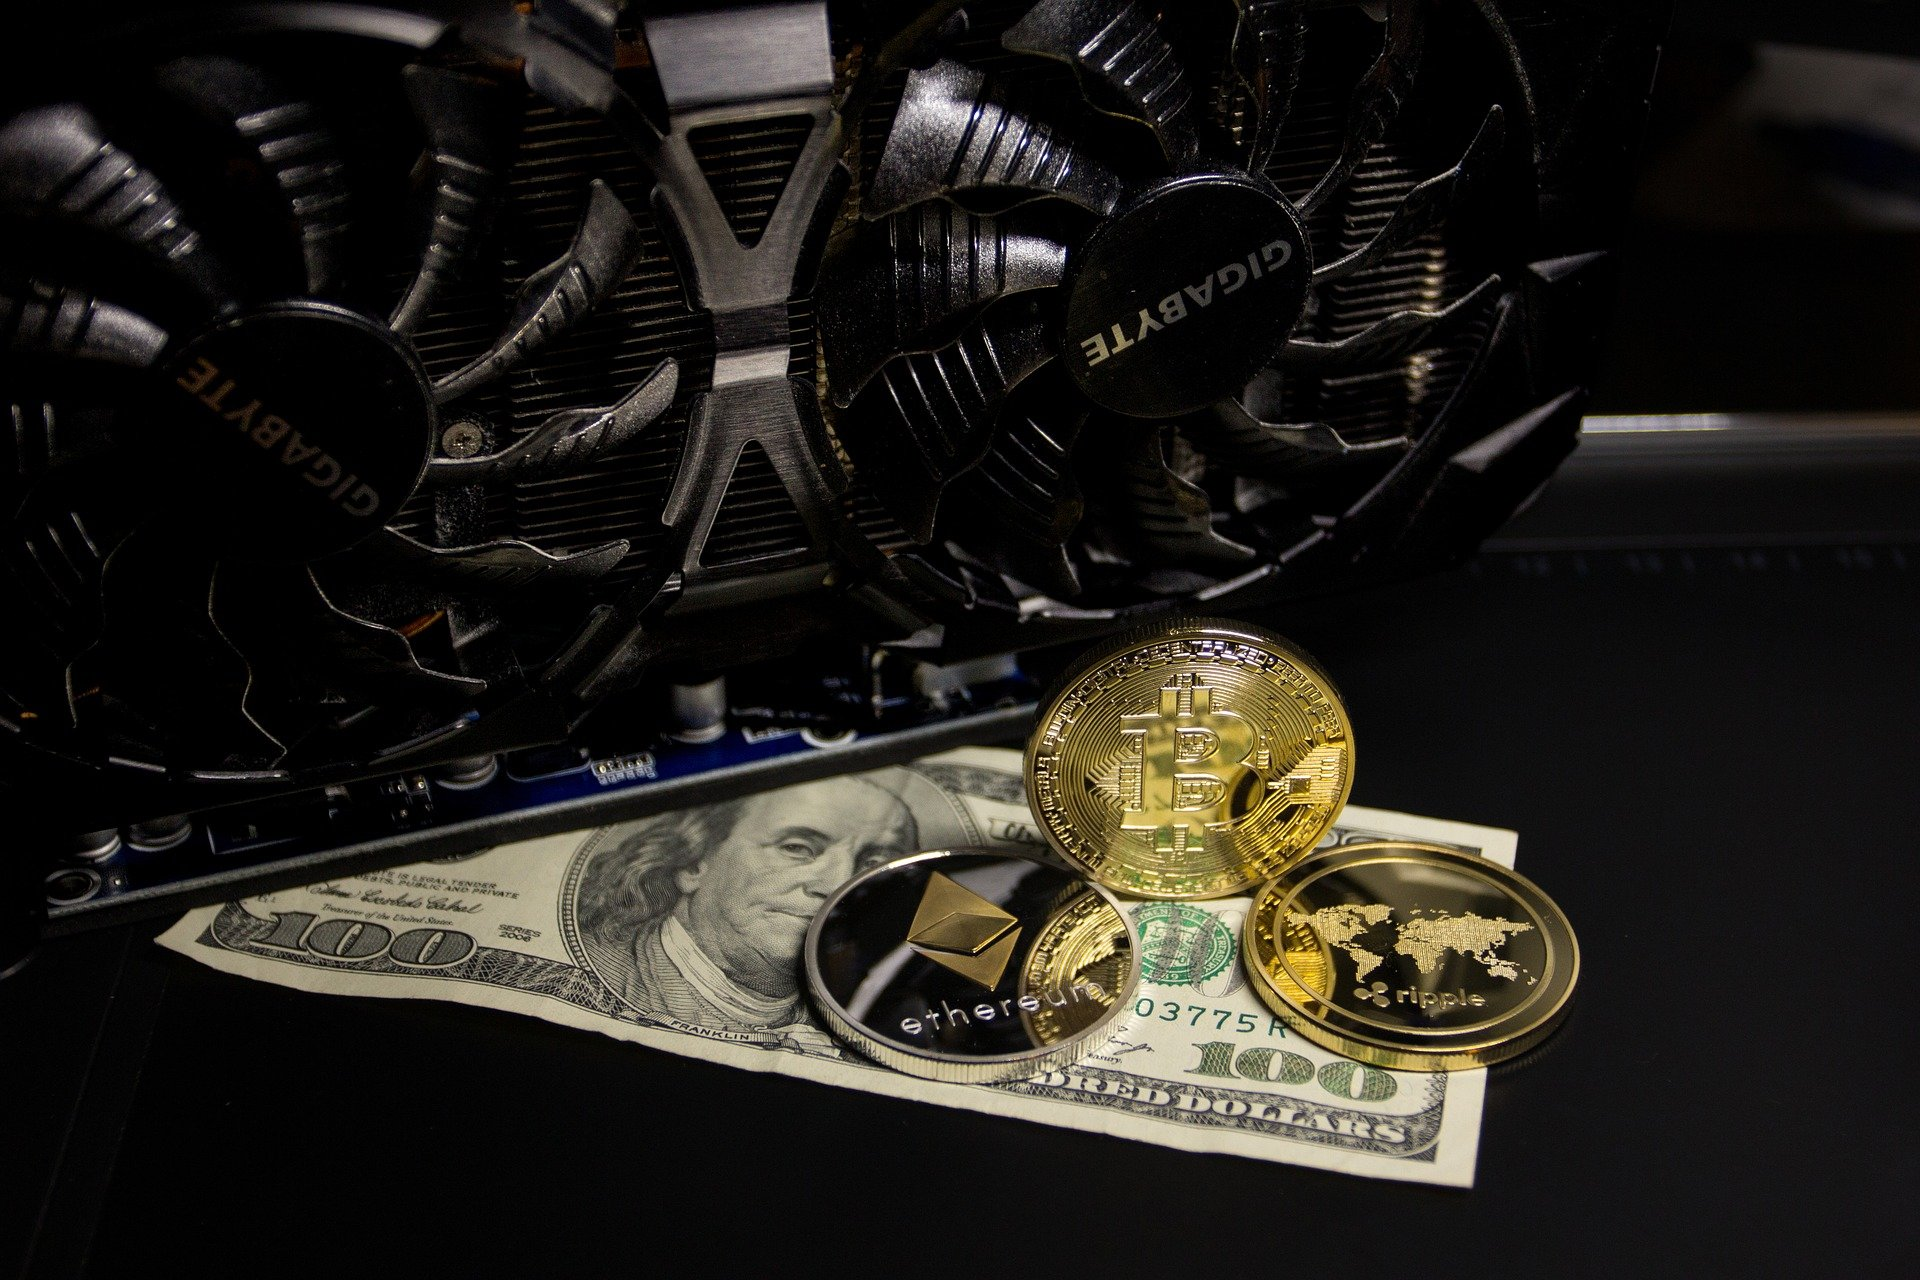 Cryptocurrency Mining Chip Supplier Warns Investors of Impending Revenue Decline